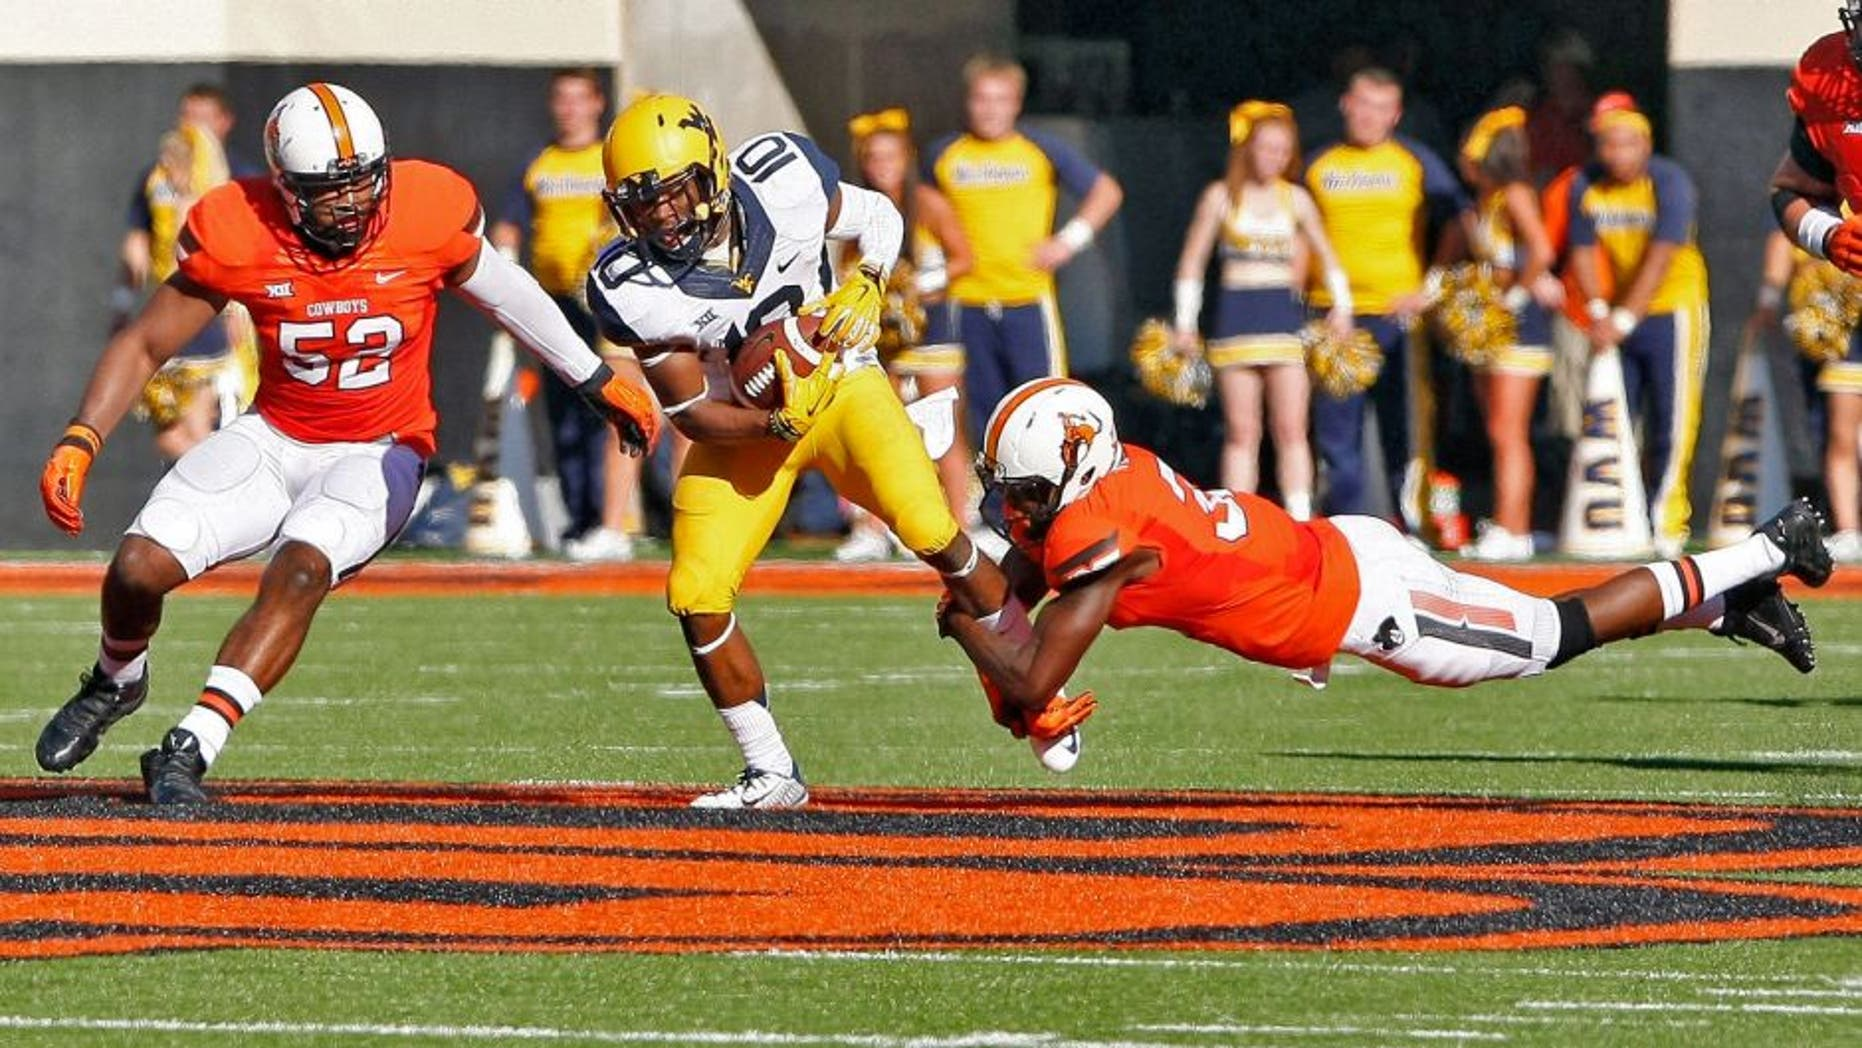 Oct 25, 2014; Stillwater, OK, USA; West Virginia Mountaineers wide receiver Jordan Thompson (center) is tackled by Oklahoma State Cowboys linebacker Ryan Simmons (left) and safety Tre Flowers (right) during the second quarter at Boone Pickens Stadium. Mandatory Credit: Alonzo Adams-USA TODAY Sports